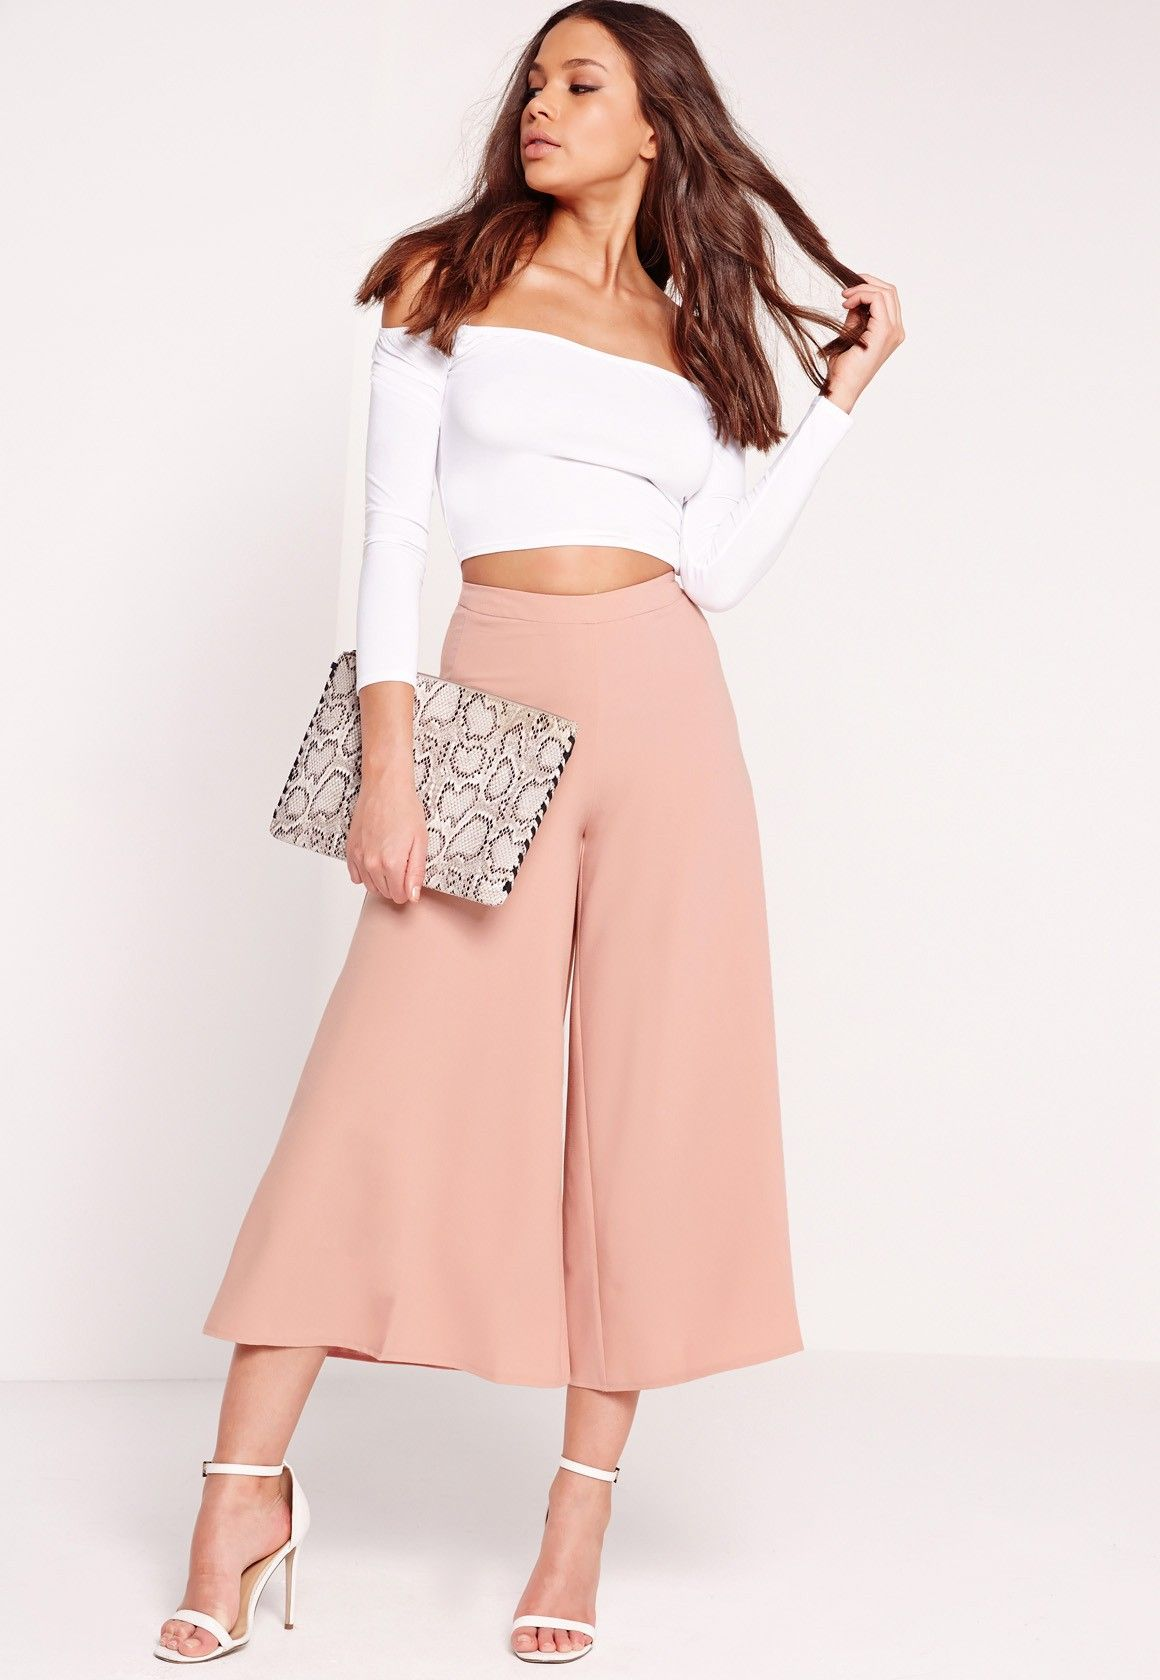 The Best Culottes To Wear This Spring